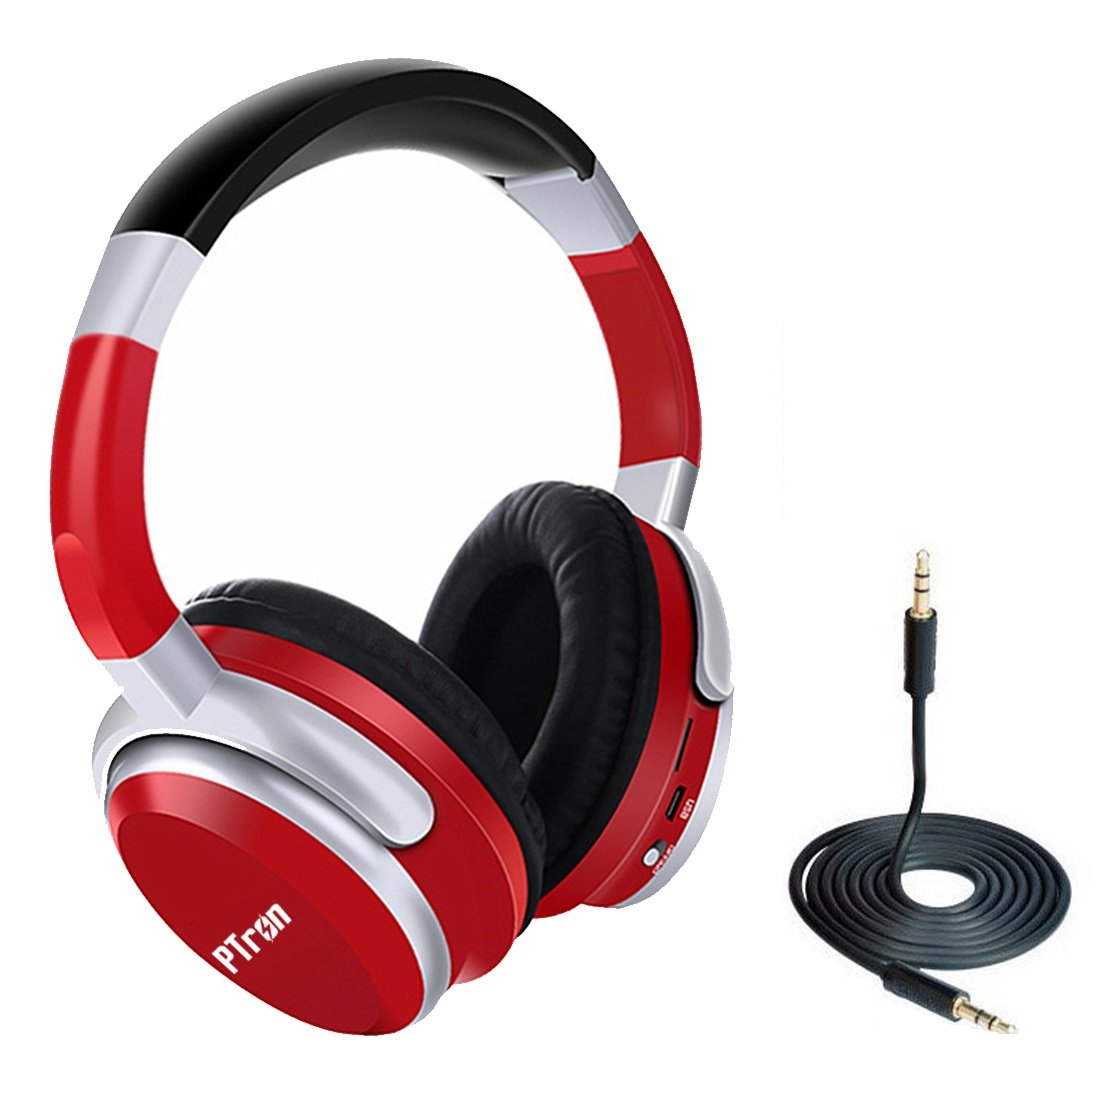 PTron Rodeo Over-Ear Bluetooth Headphones (Red)